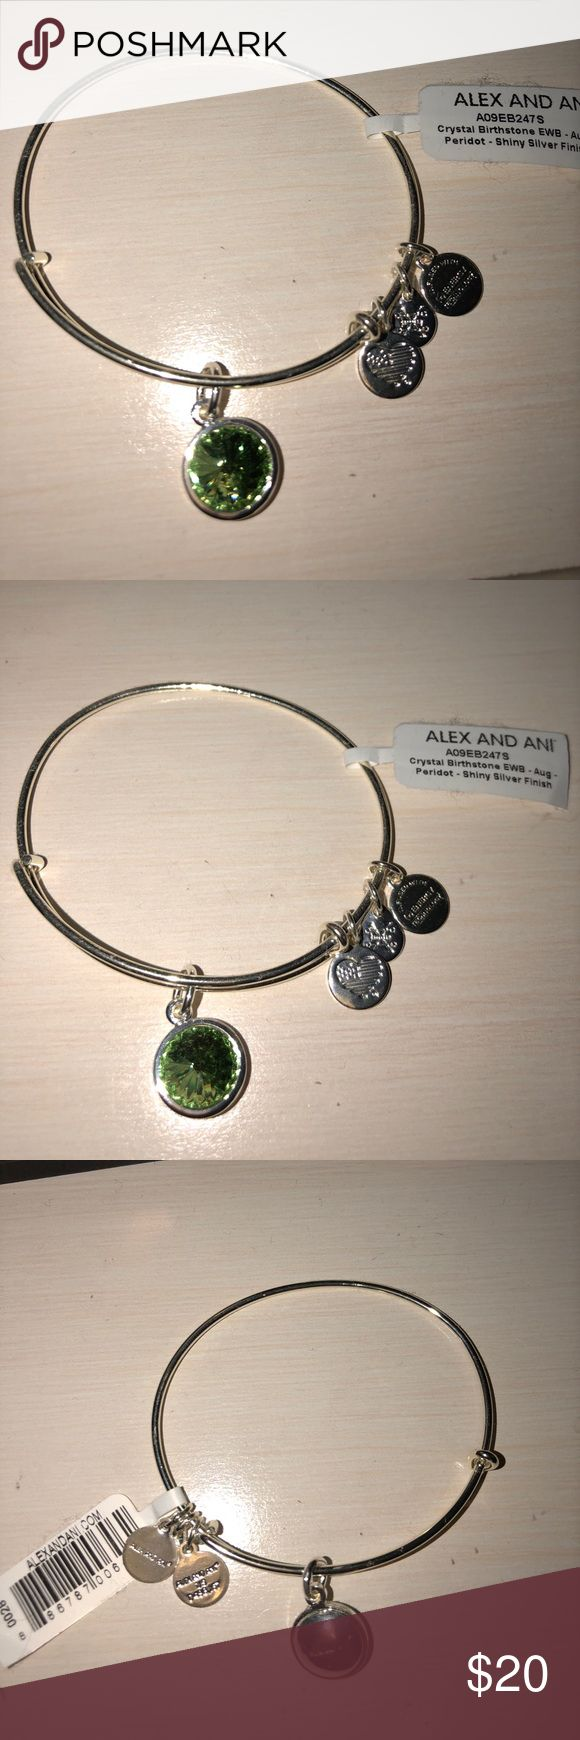 Alex and Ani August Birthstone Charm Bangle This item is a great birthday gift or a great treat to yourself even if your birthday isn't in the month of August because of the beautiful green it is. This Bangle has never been worn so it is in great condition.   ⚠️Make me an offer!⚠️ Alex and Ani Jewelry Bracelets